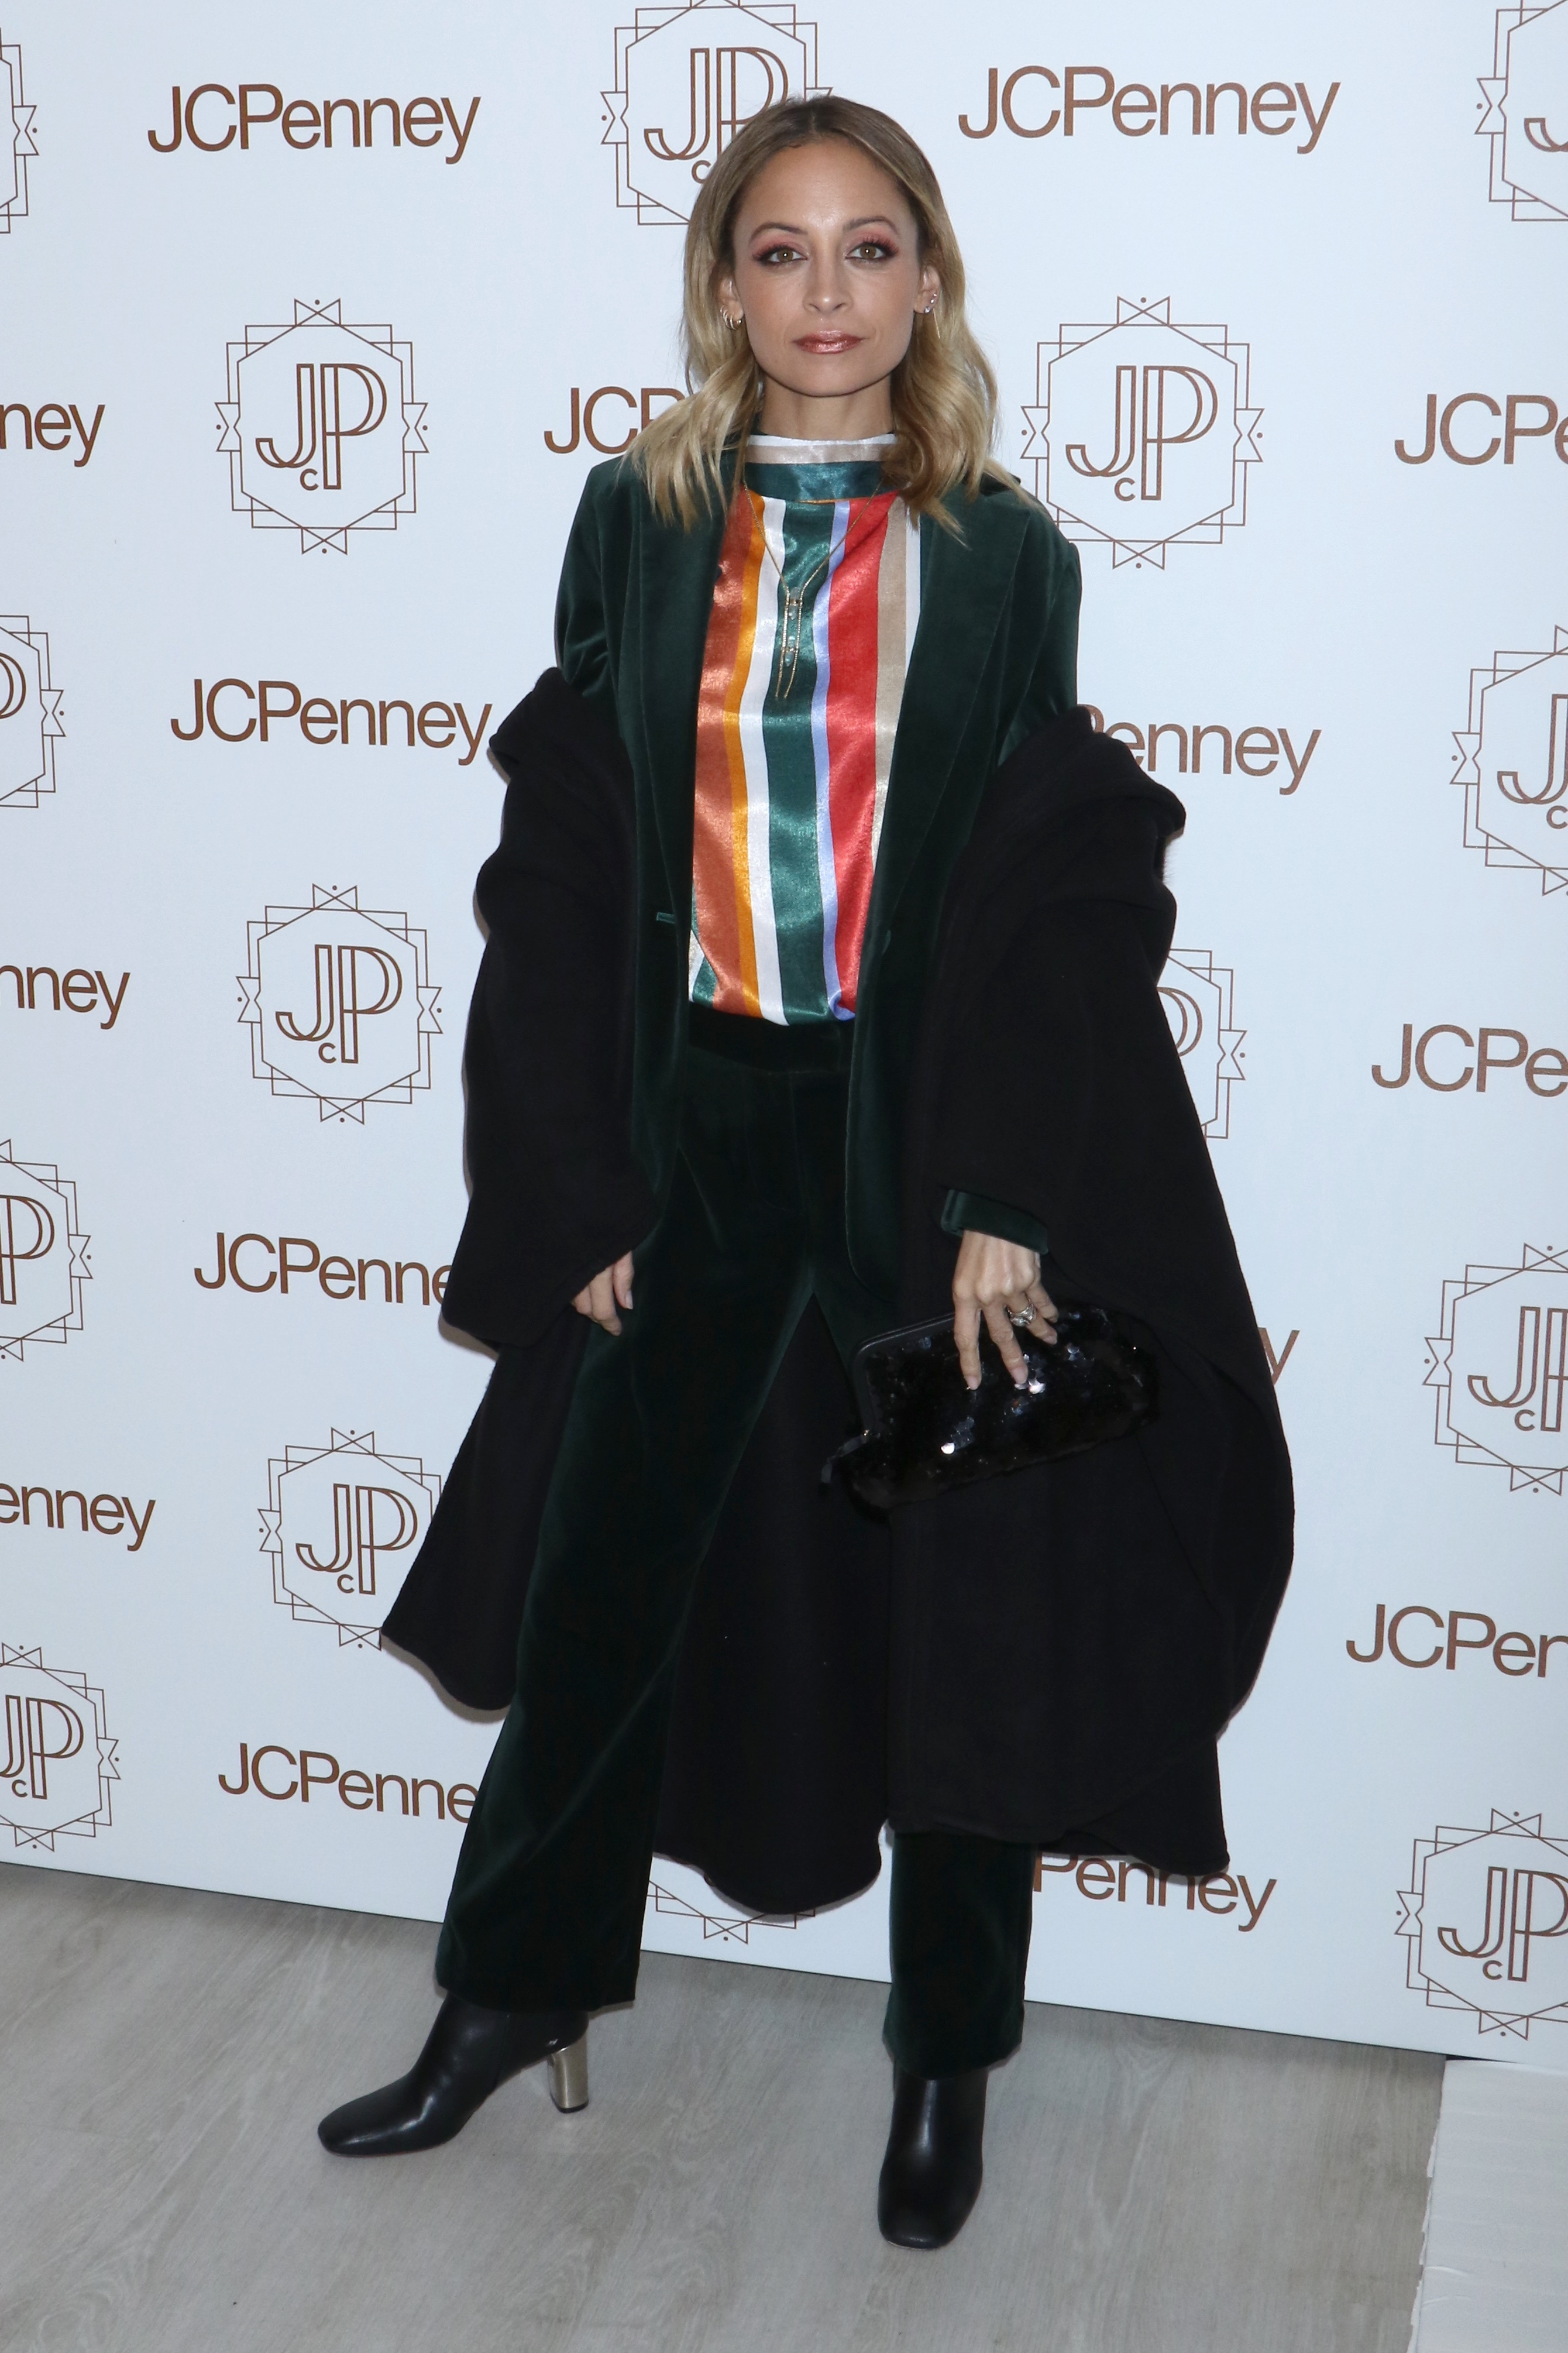 Nicole Richie attends the Jacques Penne a JCPenney Holiday Boutique Pop Up in New York City on Dec. 7, 2017.